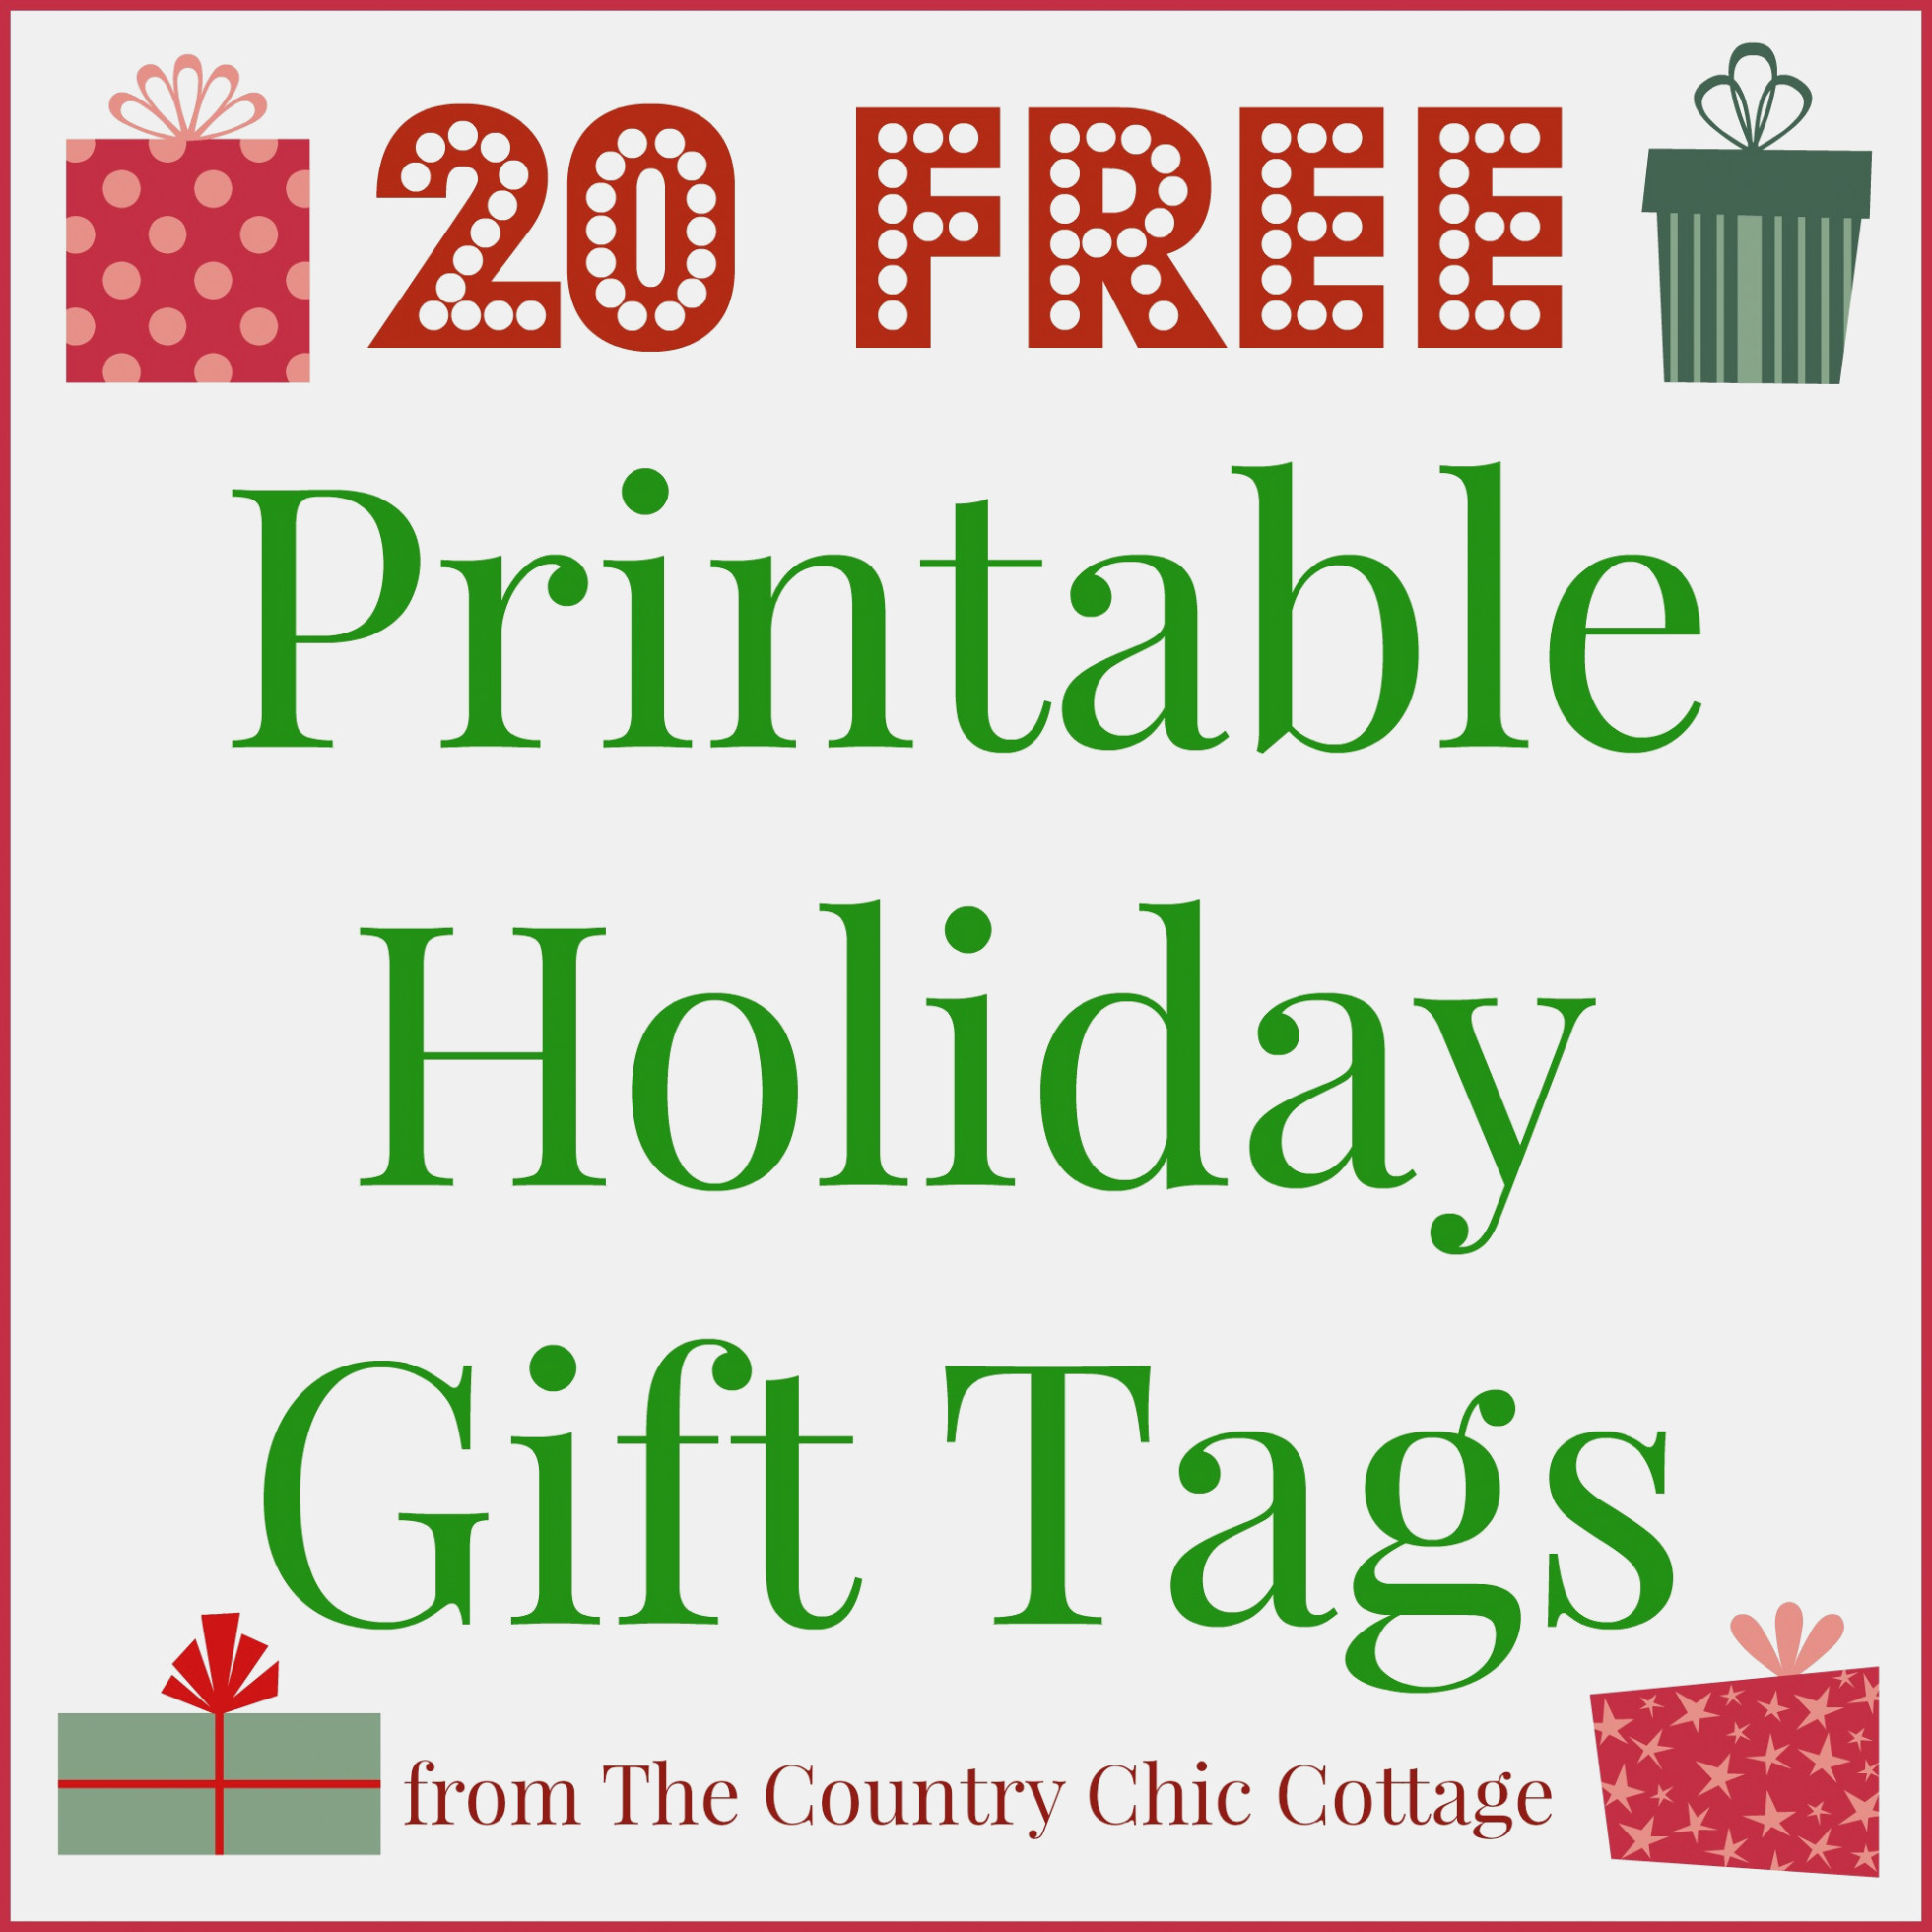 11 Printable Holiday Gift Tags (For Free!!) – The Country Chic - Free Online Gift Tags Printable